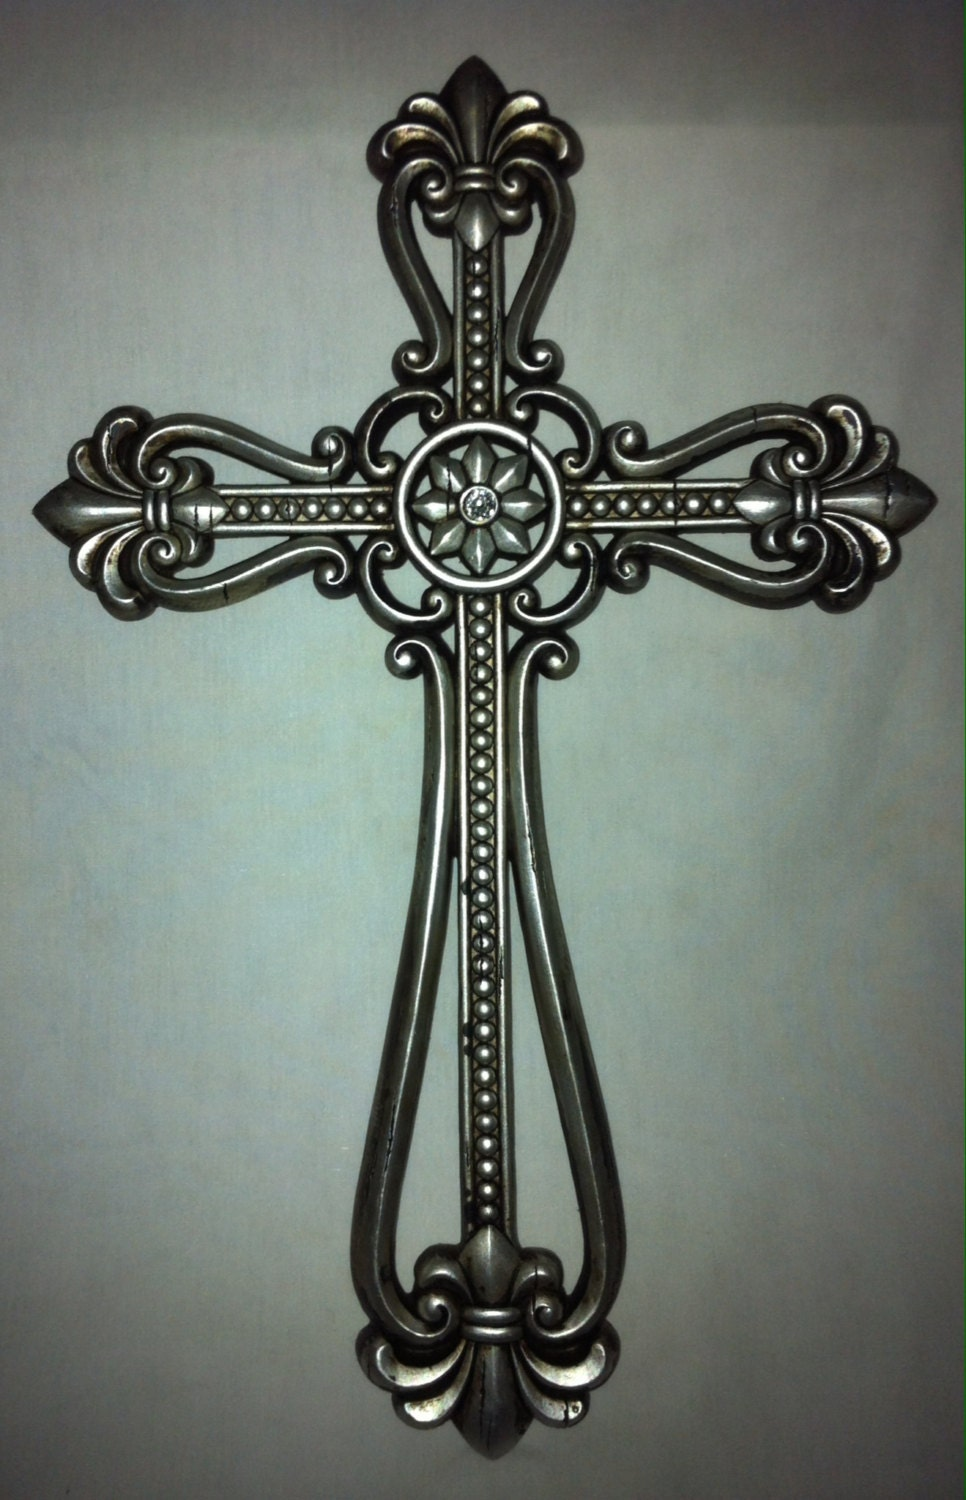 Wall Decor With Rhinestone : Cross metal wall decor w rhinestone ra